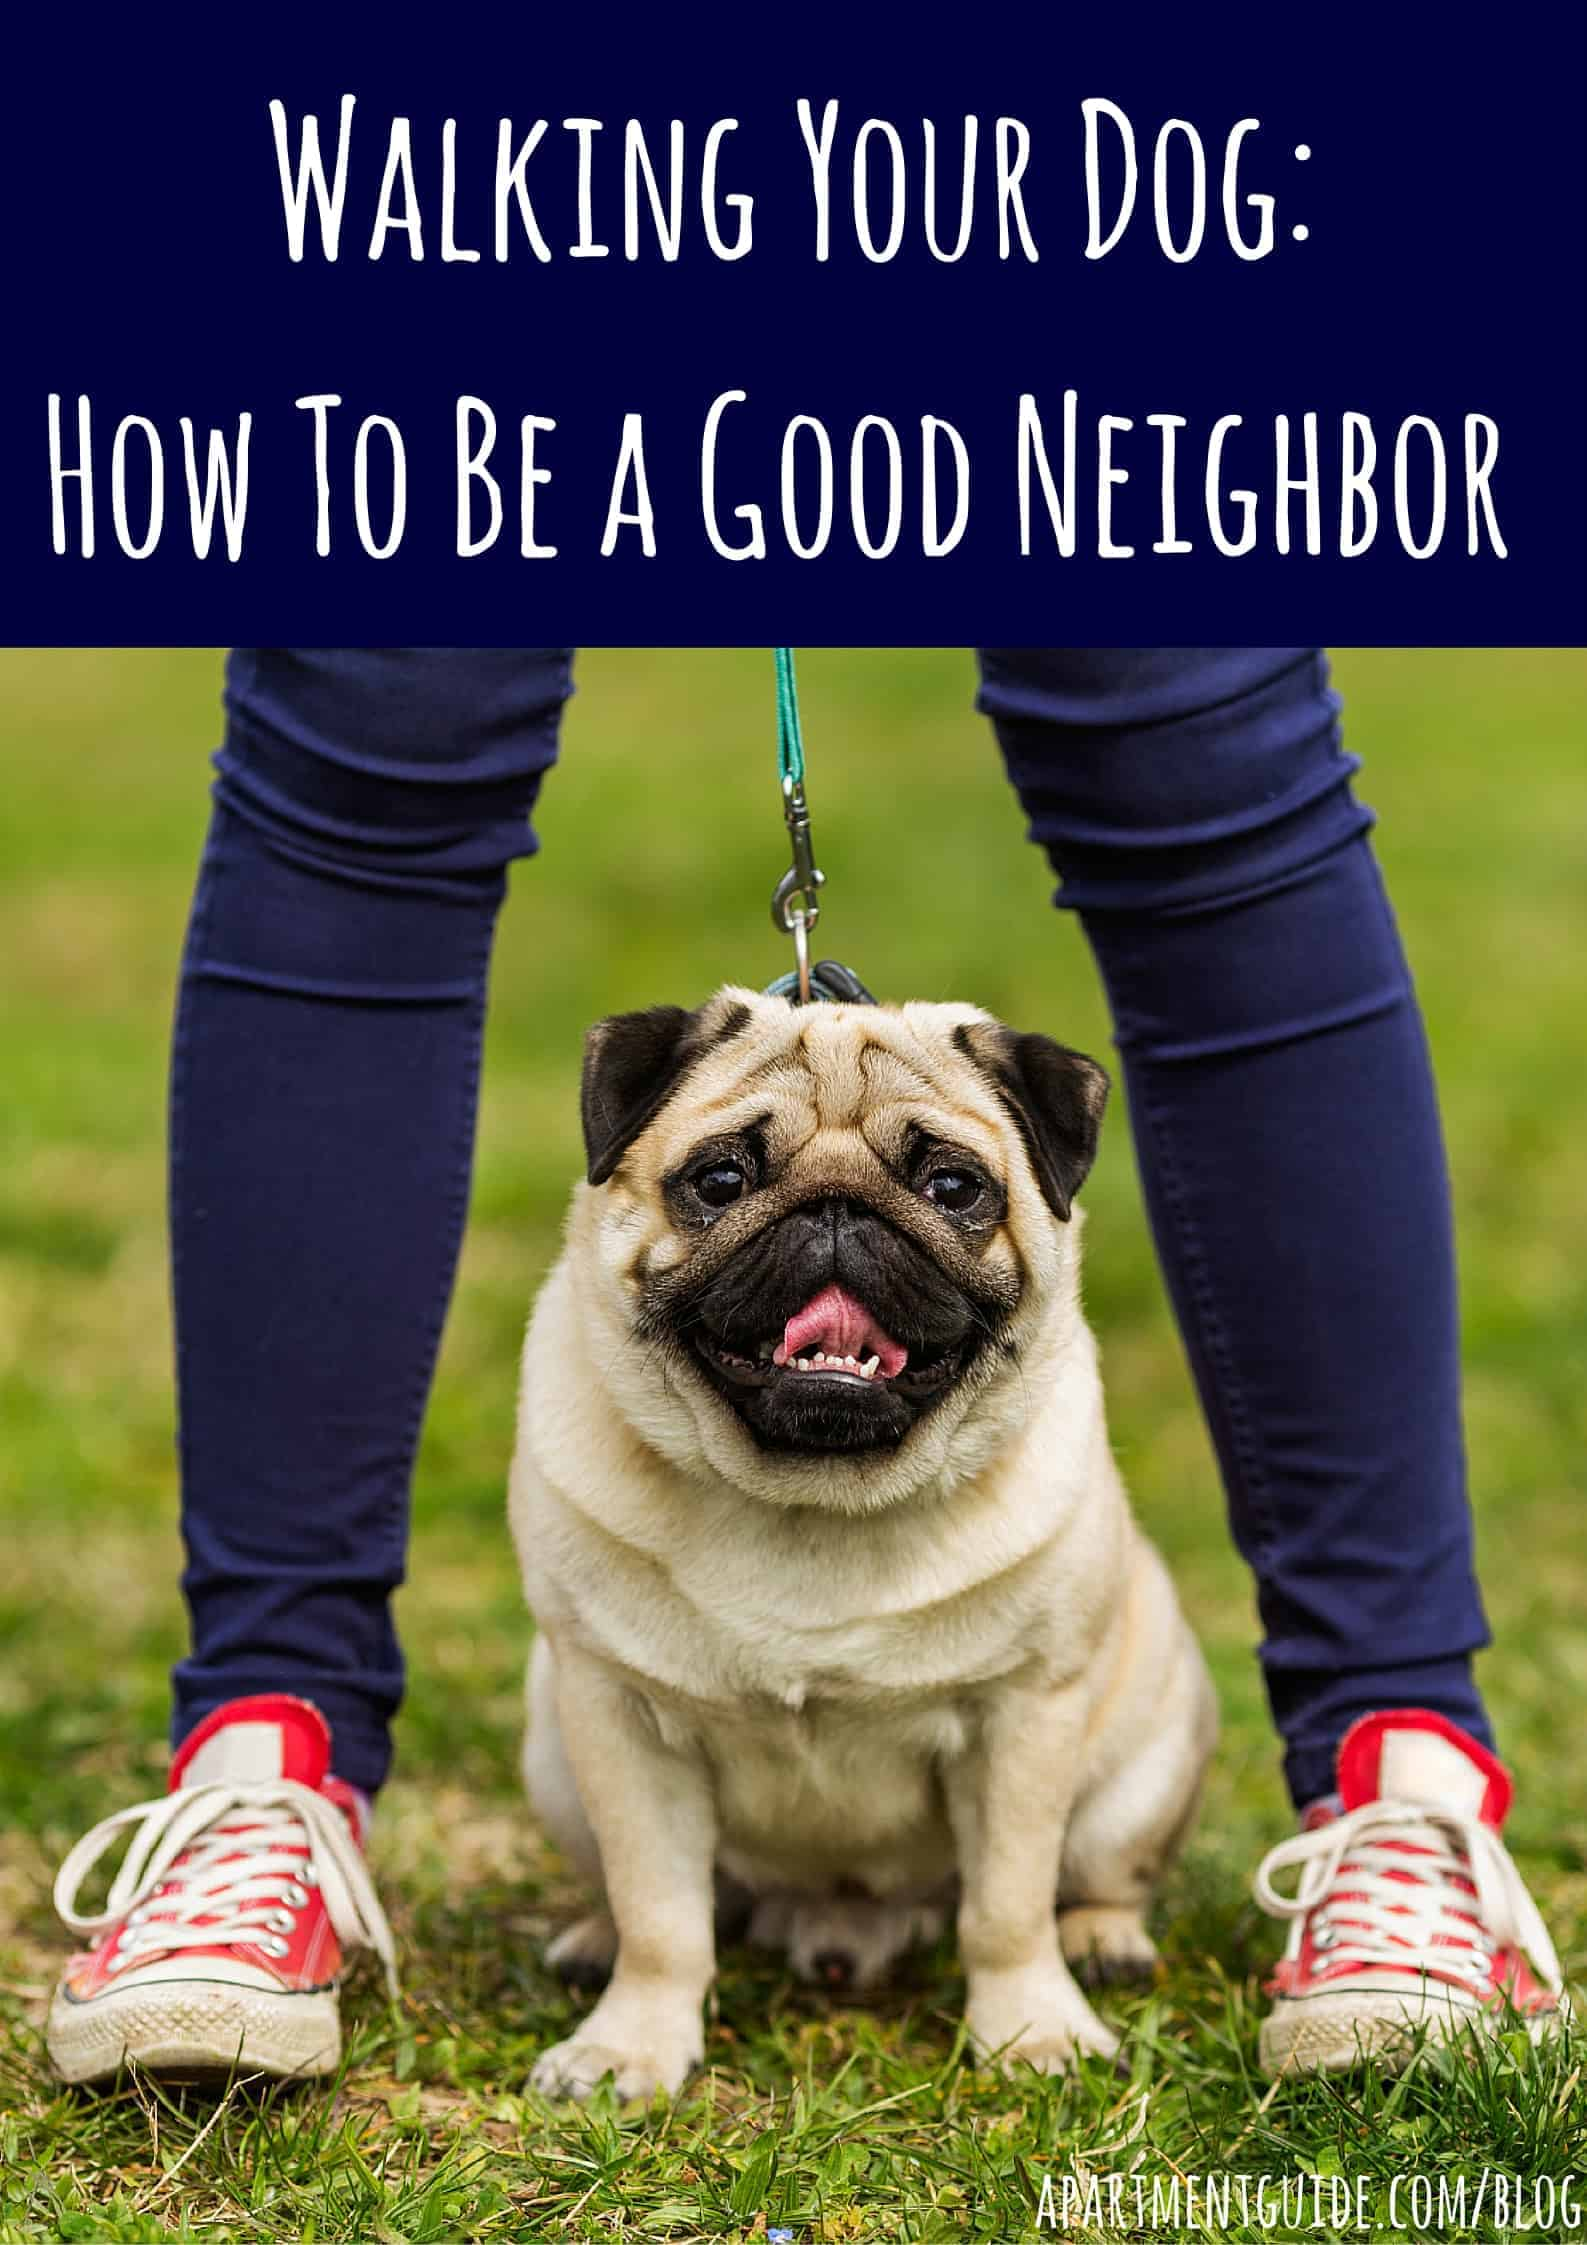 How To Walk A Dog In Your Apartment Community copy